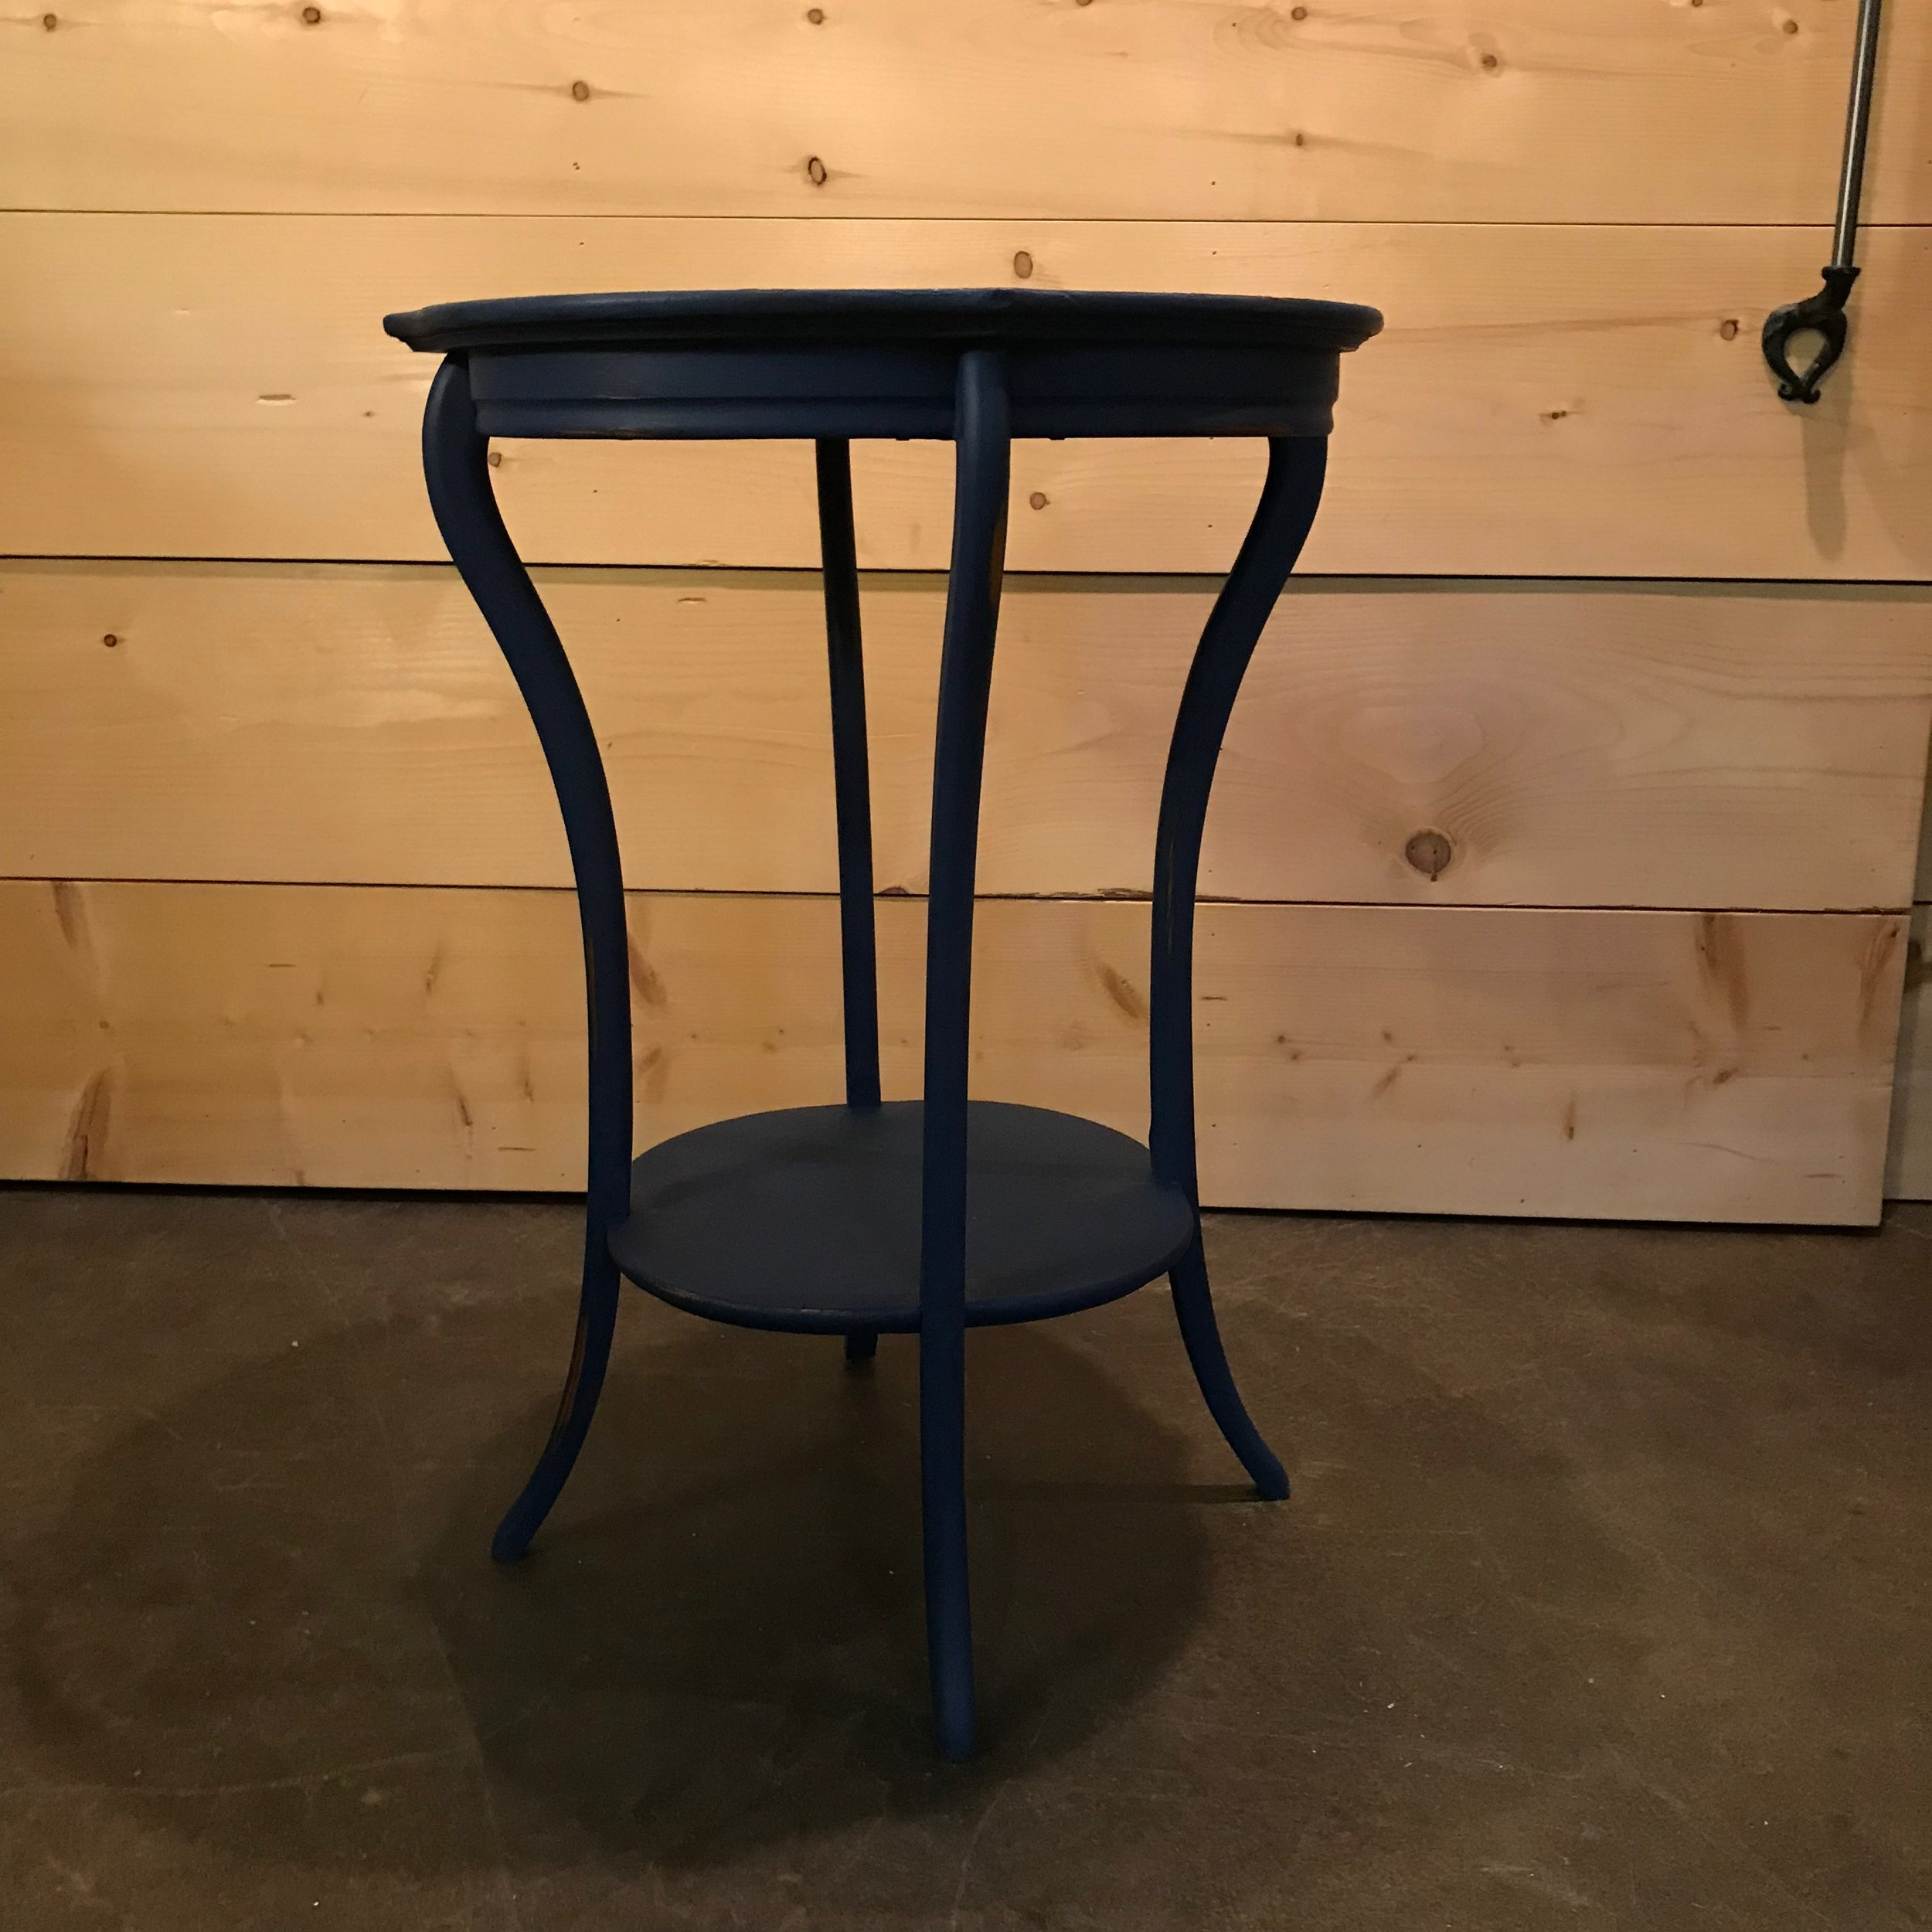 """Barry   Small round side table with a shelf on the bottom. Chalk painted navy blue. 20"""" tall x 22"""" round."""